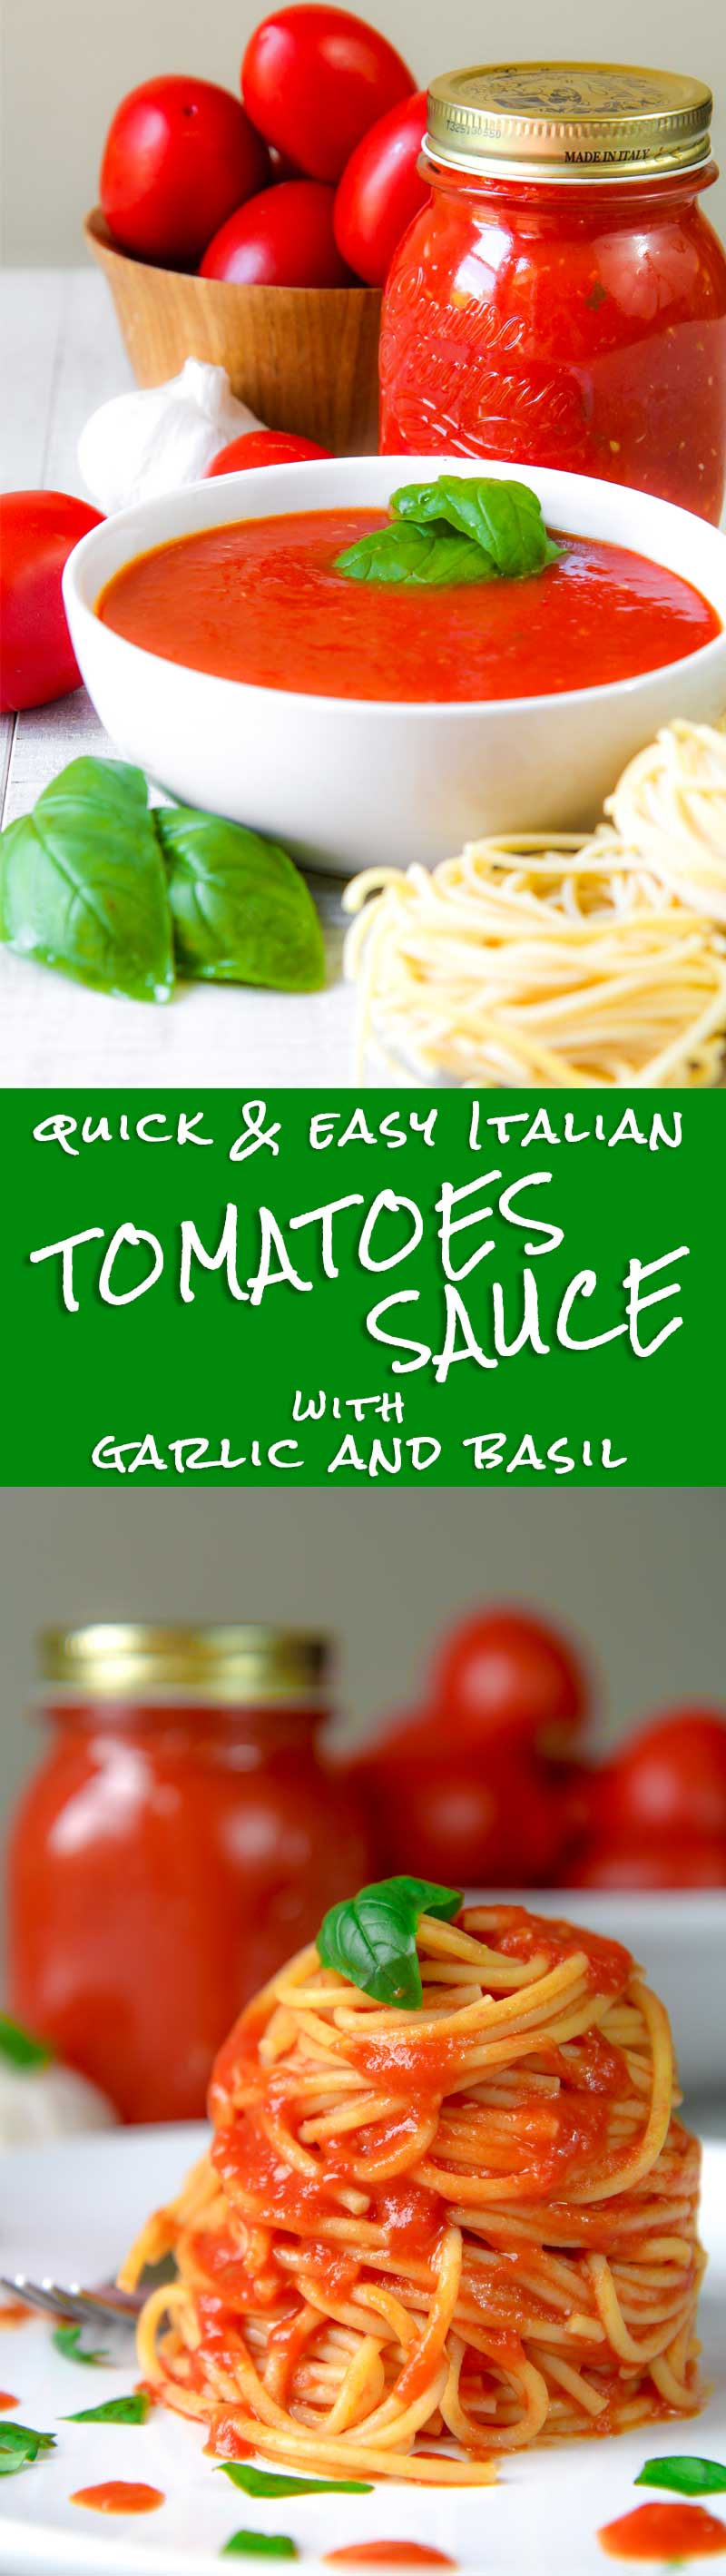 EASY TOMATOES SAUCE ITALIAN WAY with garlic and fresh basil